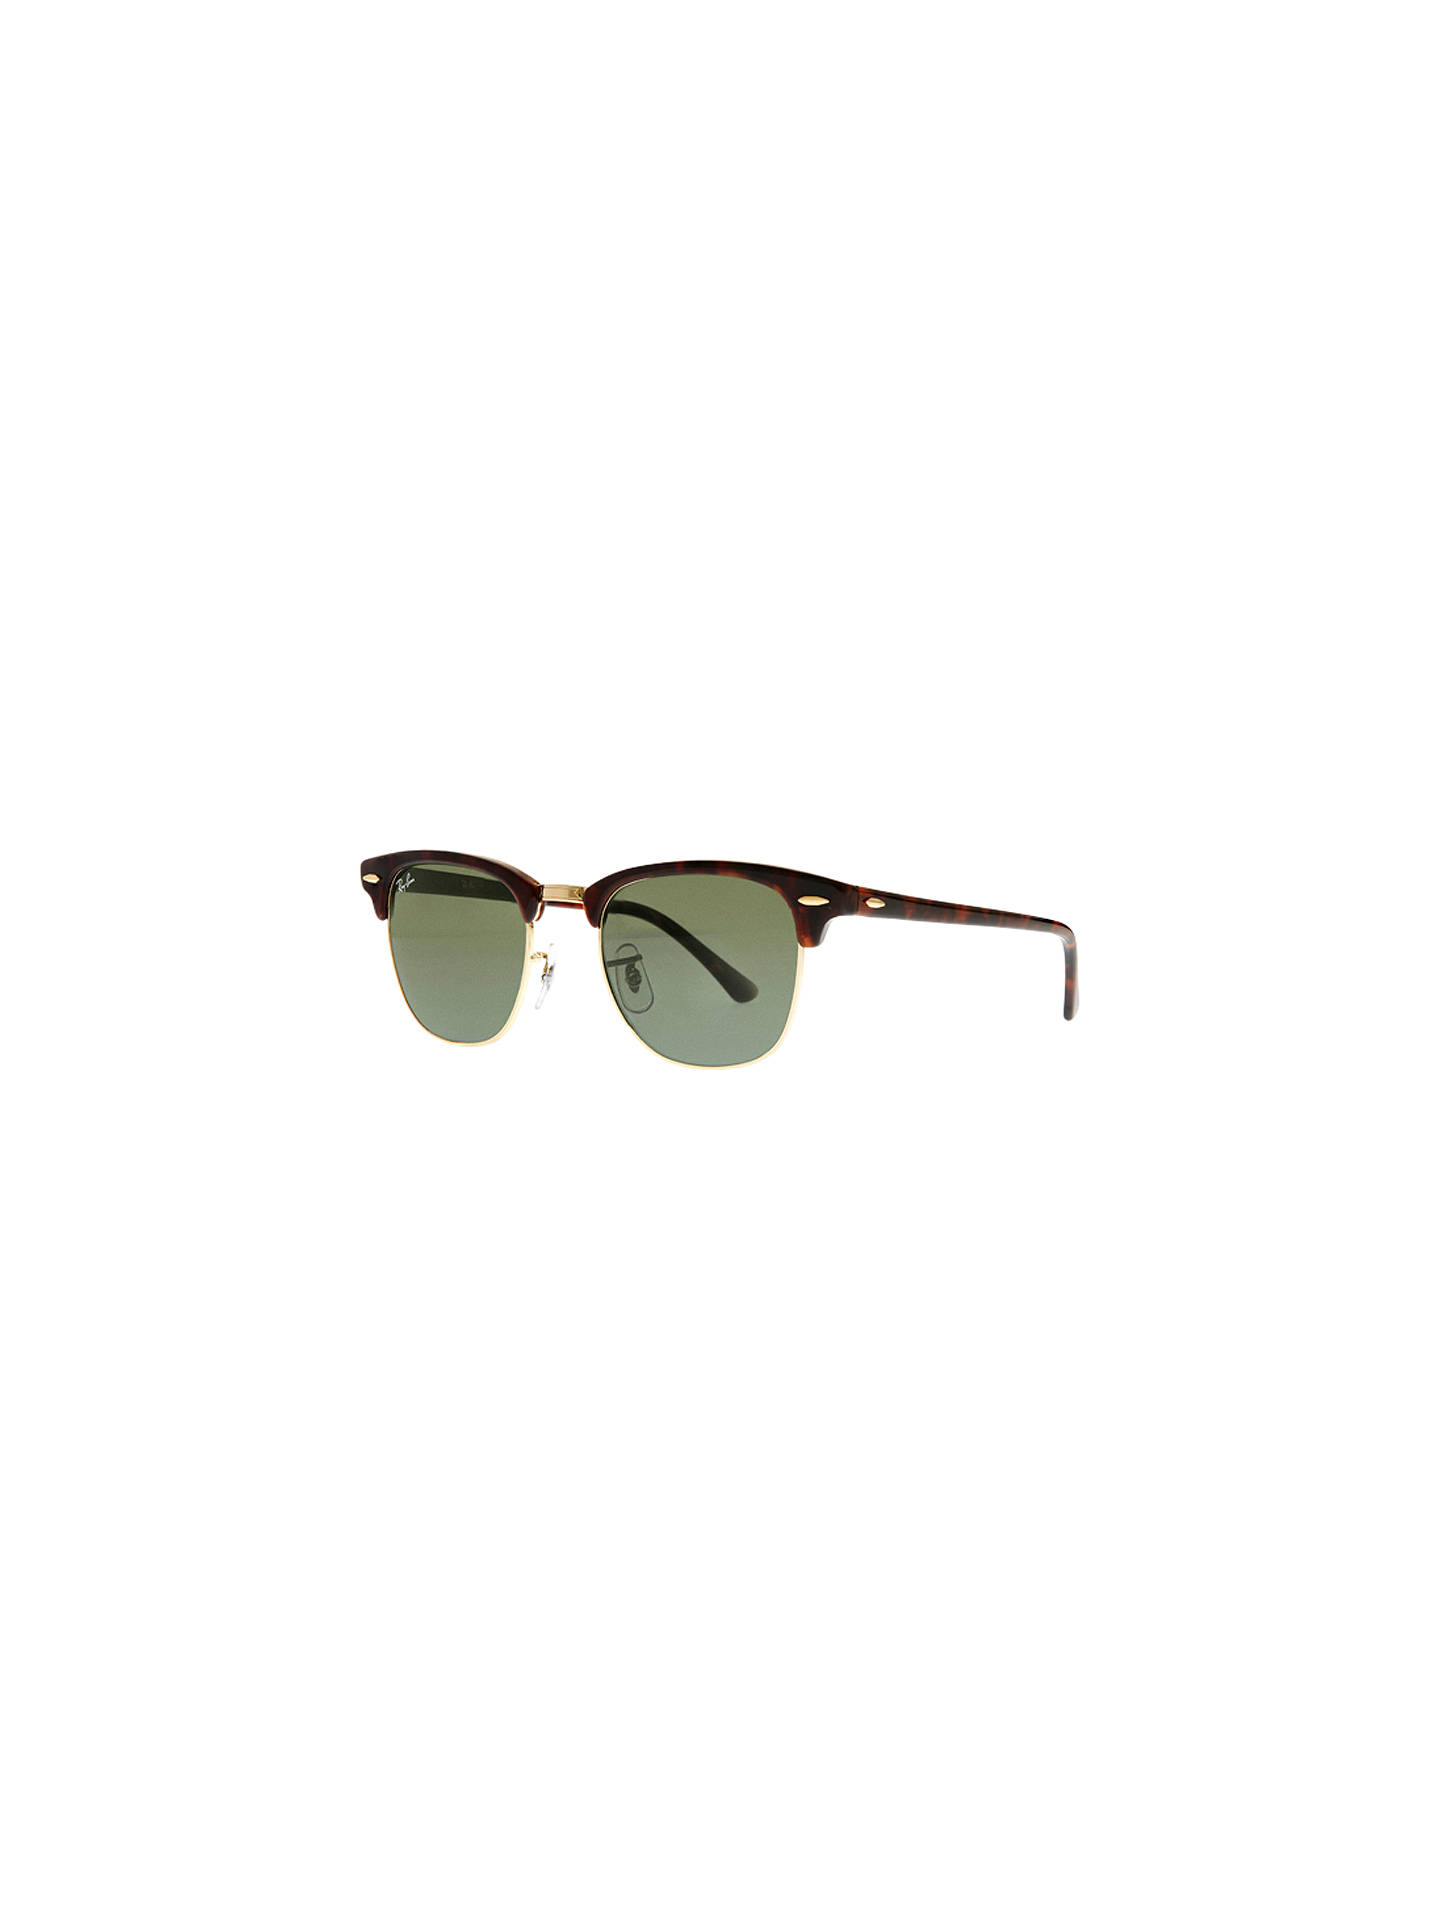 BuyRay-Ban RB3016 Men's Classic Clubmaster Sunglasses, Mock Tortoise Online at johnlewis.com